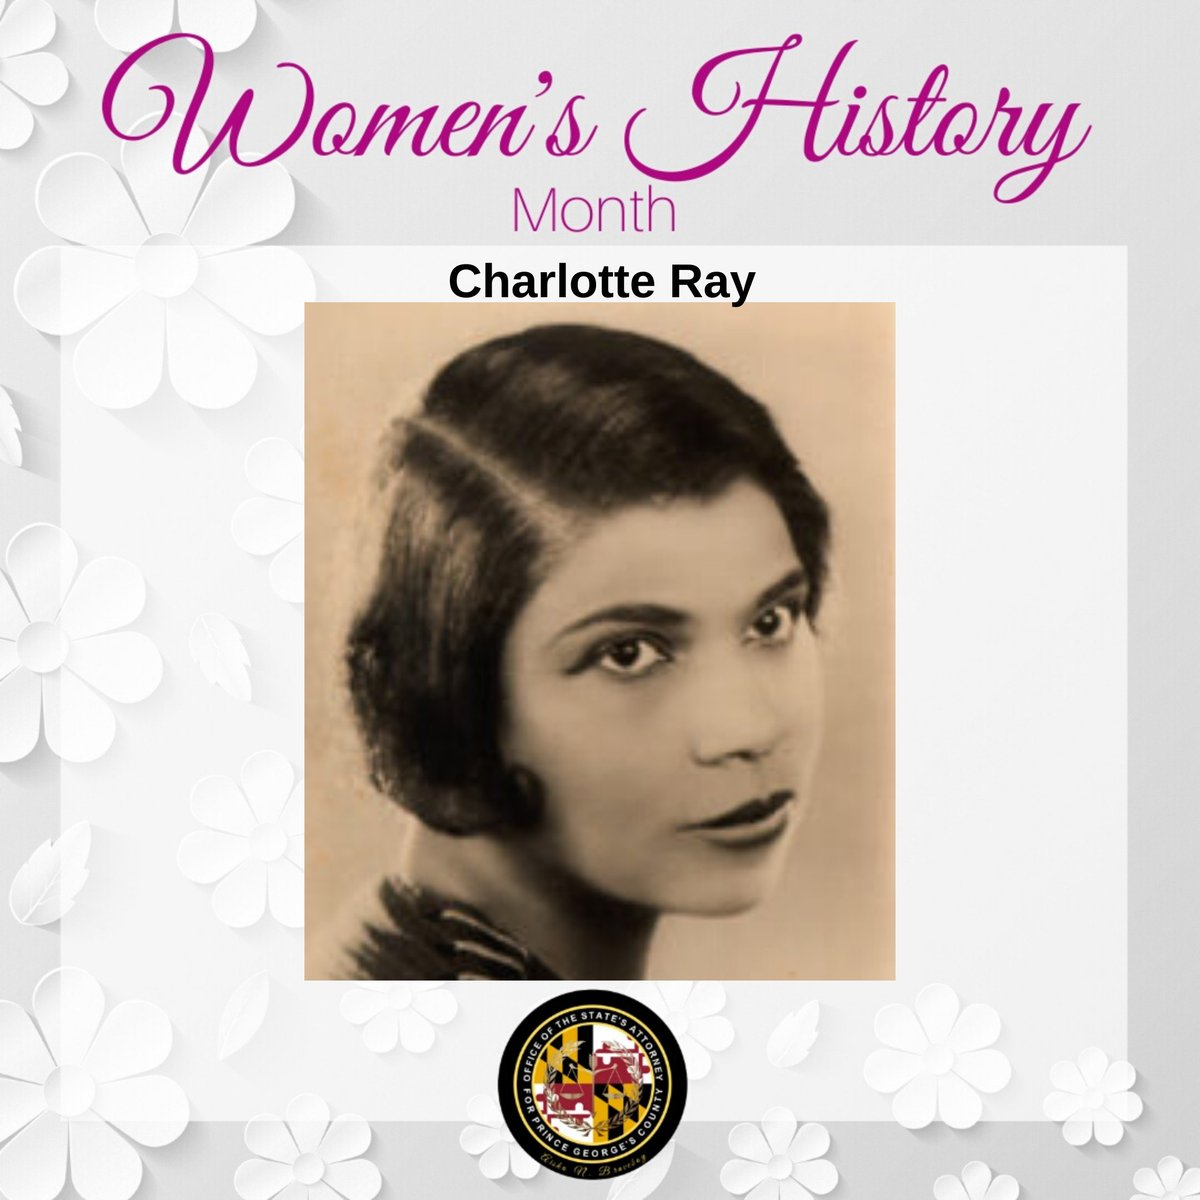 Charlotte Ray - 1st Black American female lawyer in the U.S. Ray graduated from @HowardLawSchool in 1872. She was the 1st female admitted to the D.C. Bar, & the 1st woman admitted to practice before the Supreme Court of D.C.  #wcw #WHM2020 #bravejustice #pgsaonews #charlotteray